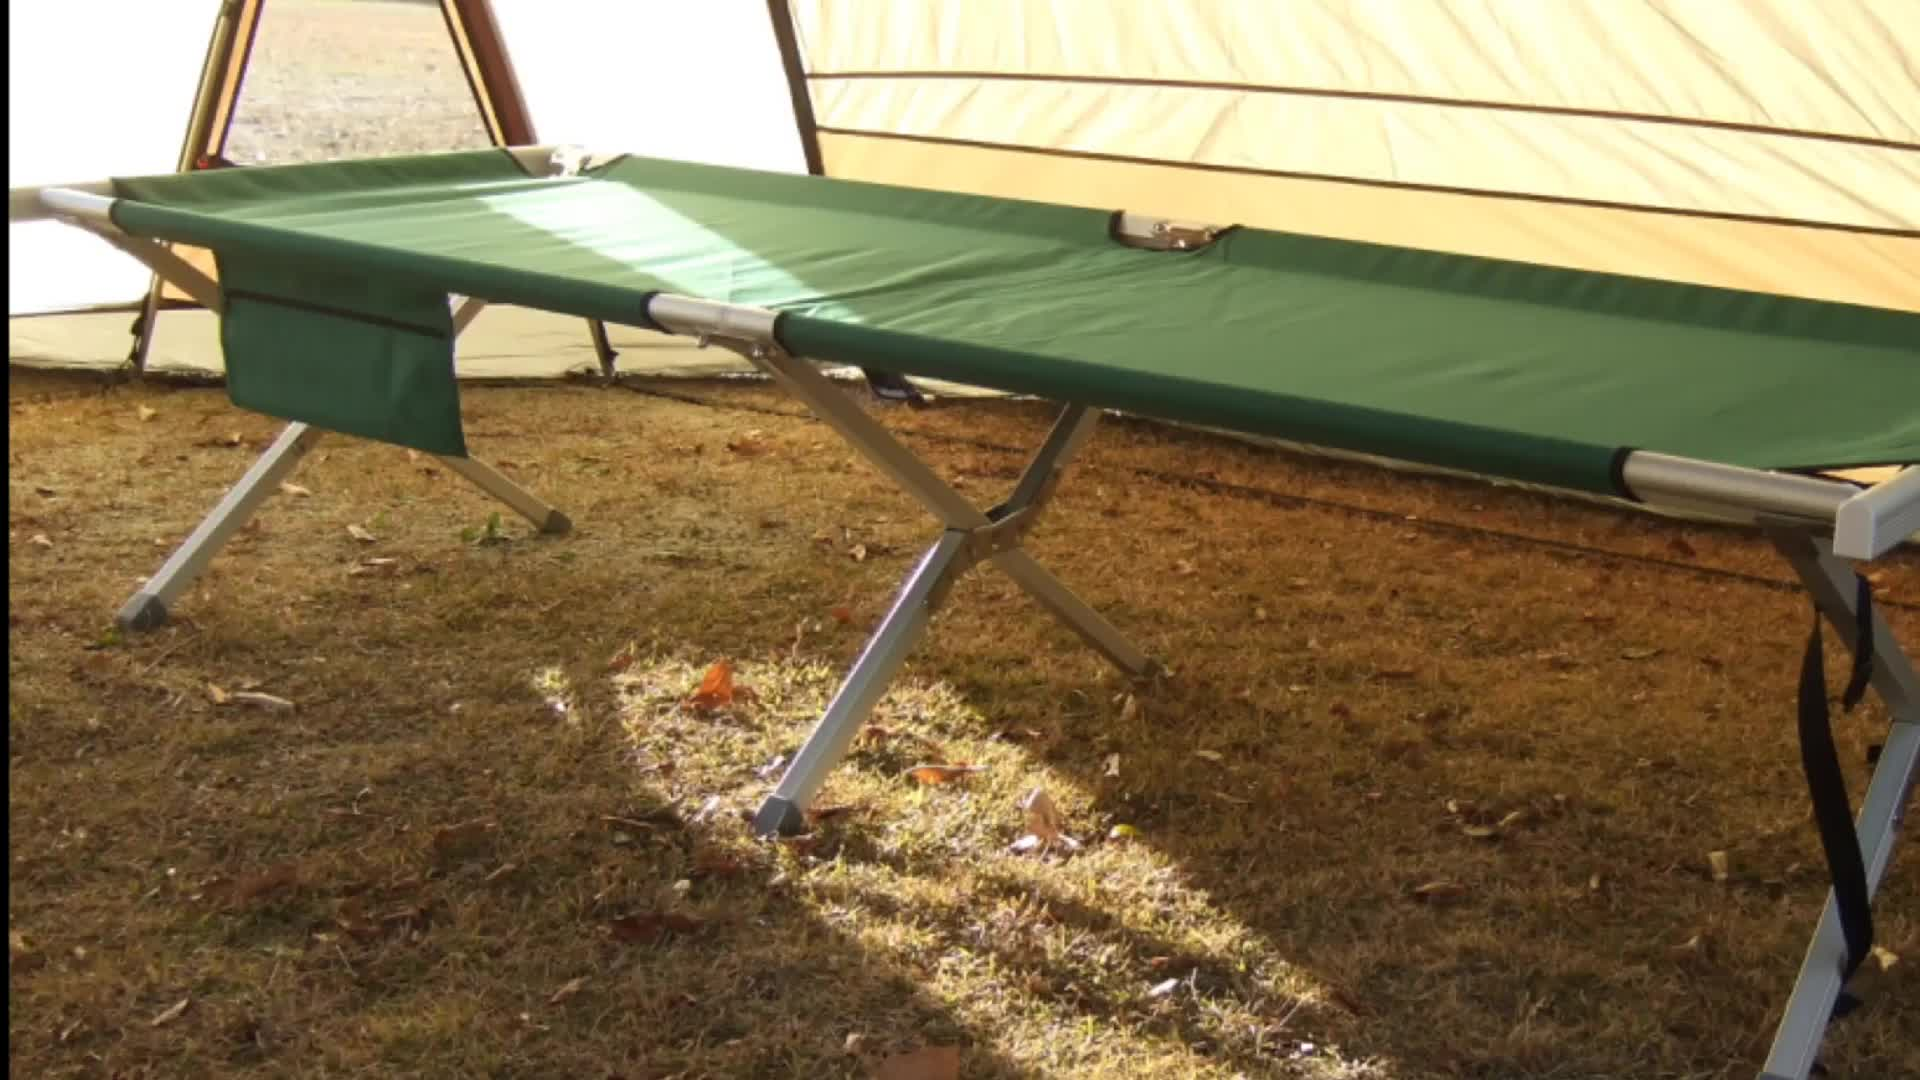 Onwaysports Aluminum Super Durable Camping Folding Bed OW-193